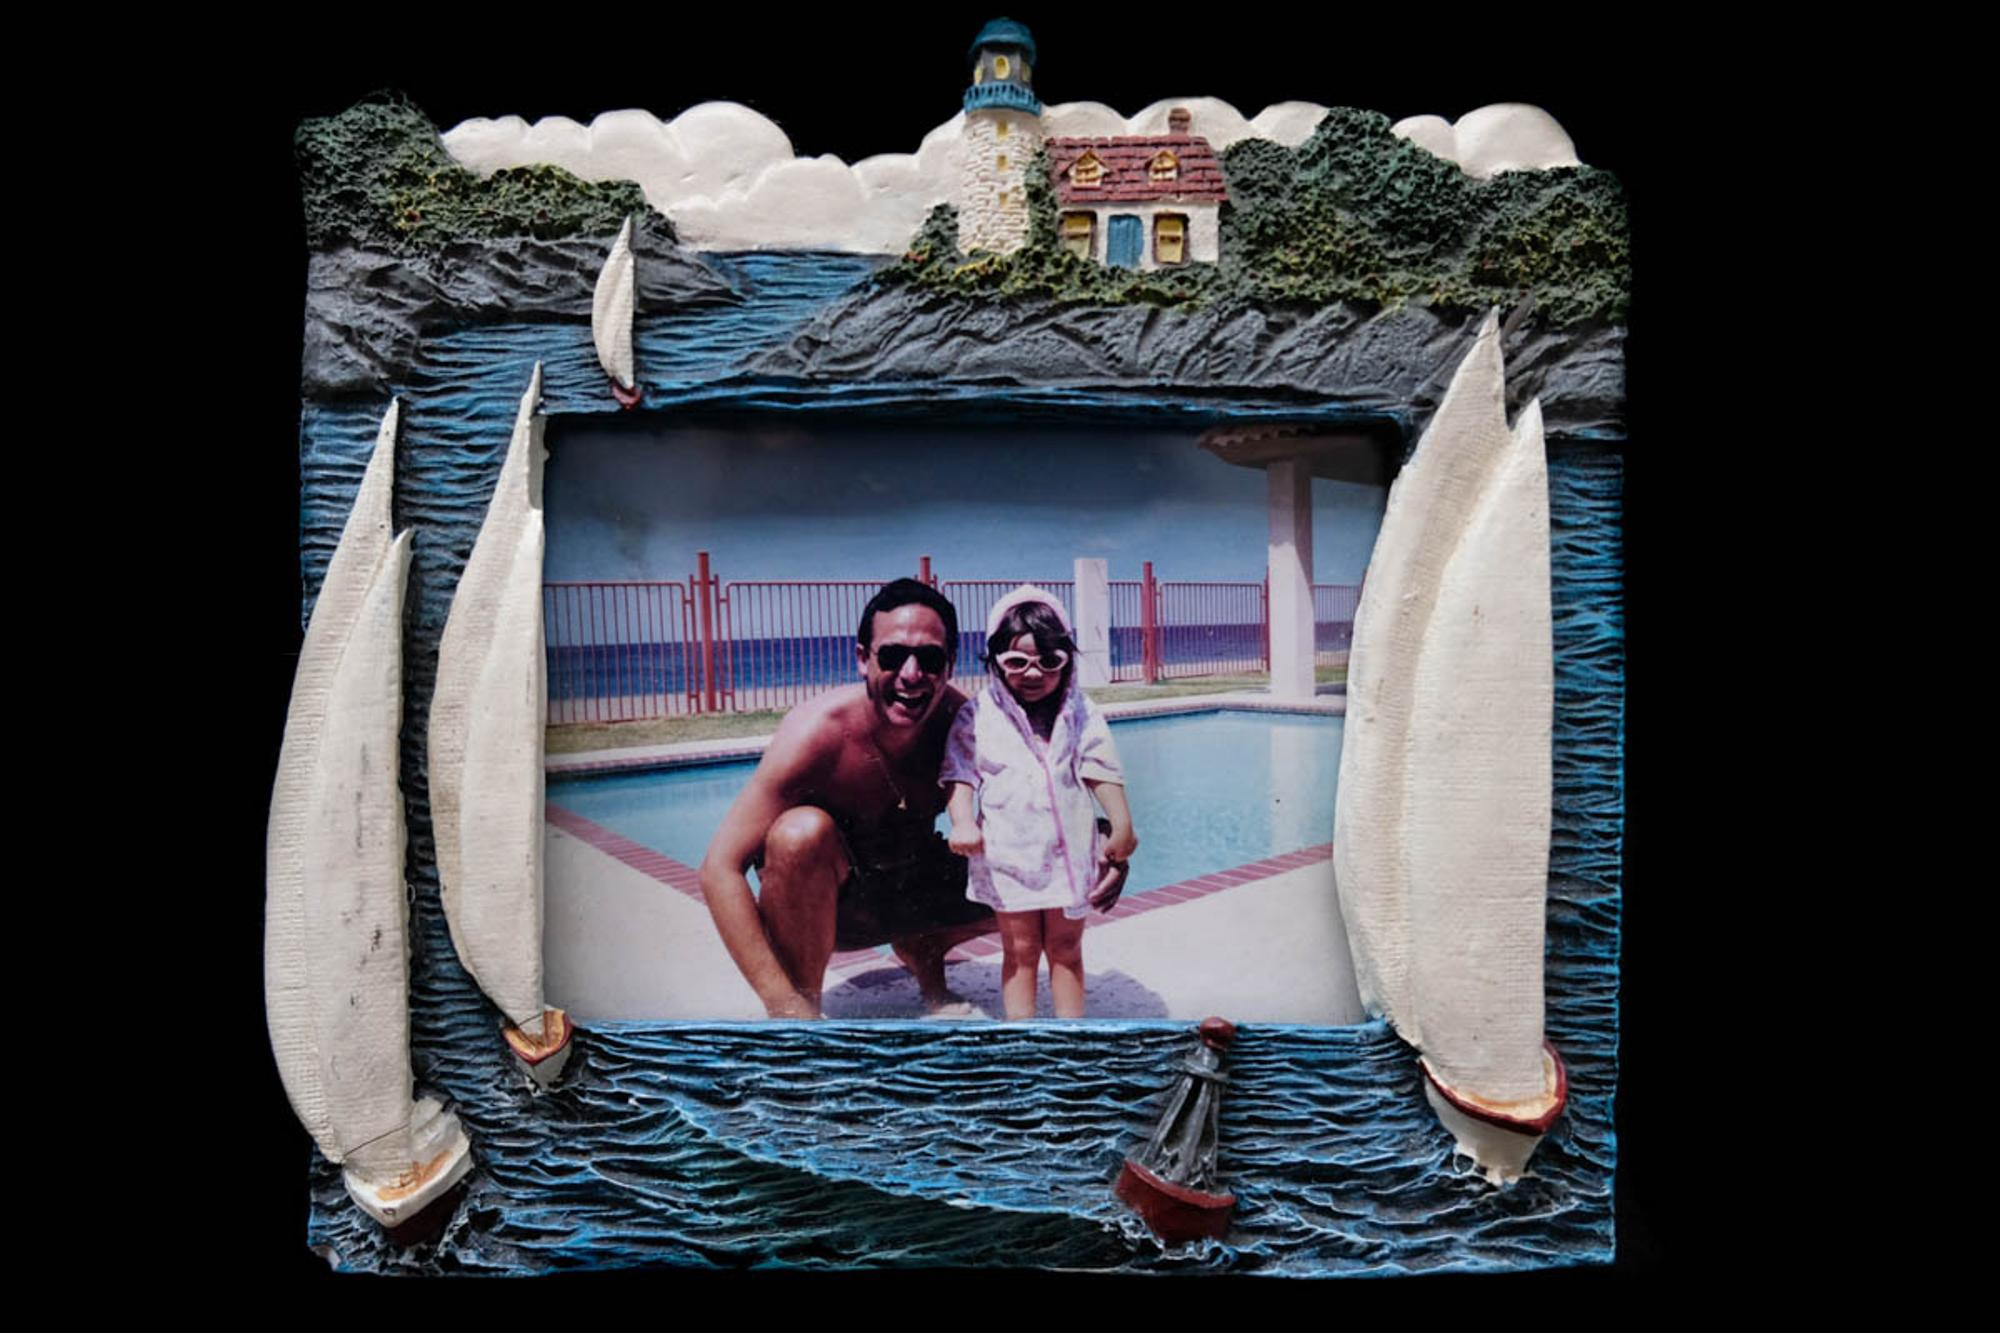 The first photograph taken for this project is of the first item that was given to me after my father's funeral. My father loved the ocean and had several picture frames that made reference to it. In this image we are at a apartment complex at Rincón, Puerto Rico, here he would spend the whole day at the beach and in the water. Gabriella N. Báez (@gabriellanbaez) is a documentary photographer and visual artist based between San Juan, Puerto Rico and New York City. Early in her career, she has focused on documenting intimate subjects: from her father's death post-Hurricane María, the archives of her Cuban family, and the relationship between sexuality and depression. Her work is raw, intimate, and personal. She has been published in Reuters, Bloomberg, The New York Times, The Guardian, CNN, BuzzFeed News, and The Washington Post. She is currently a 2020 Magnum Foundation Photography and Social Justice Fellow.